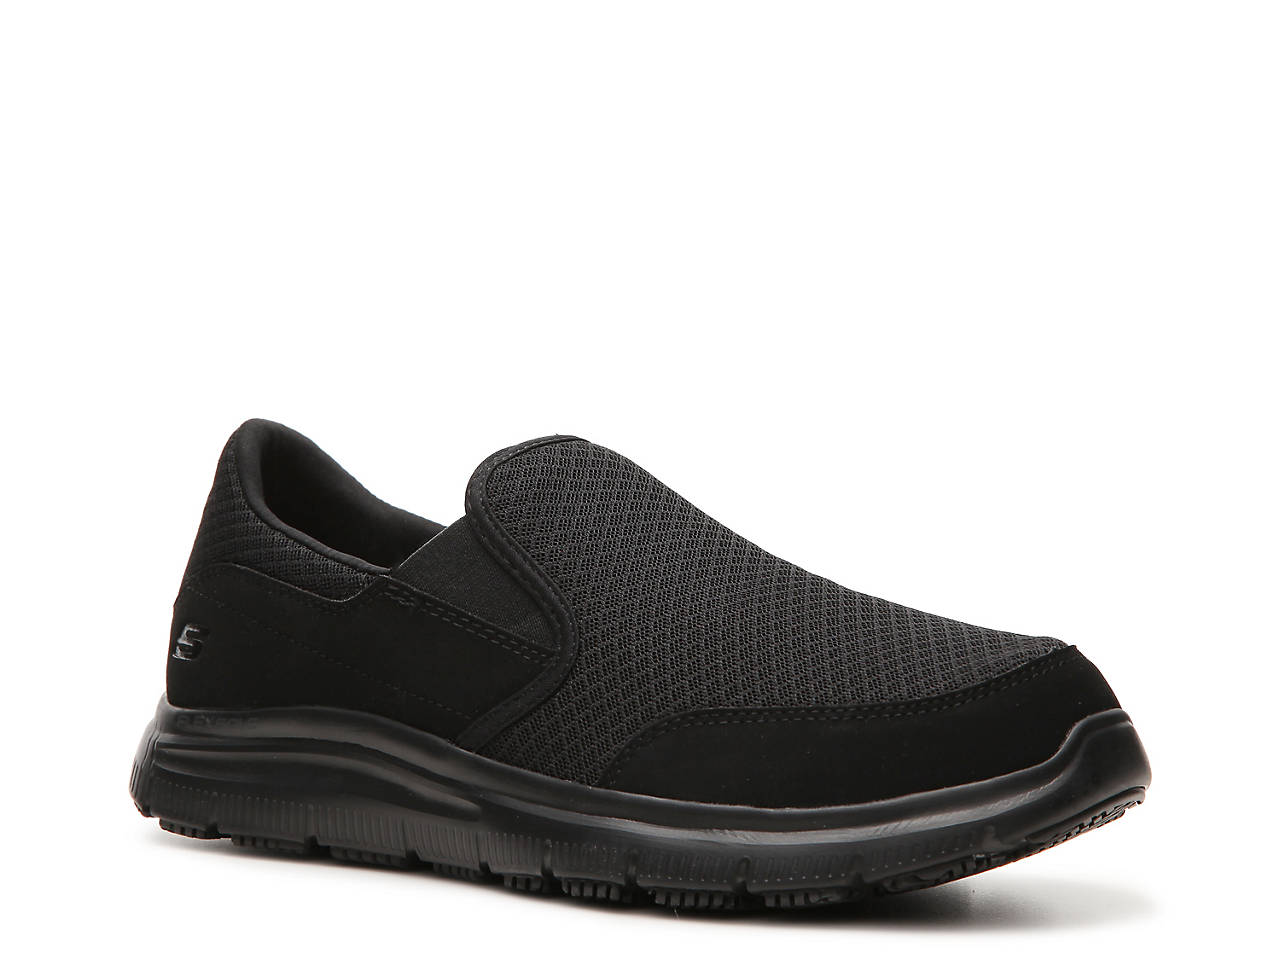 skechers slip on shoes for men